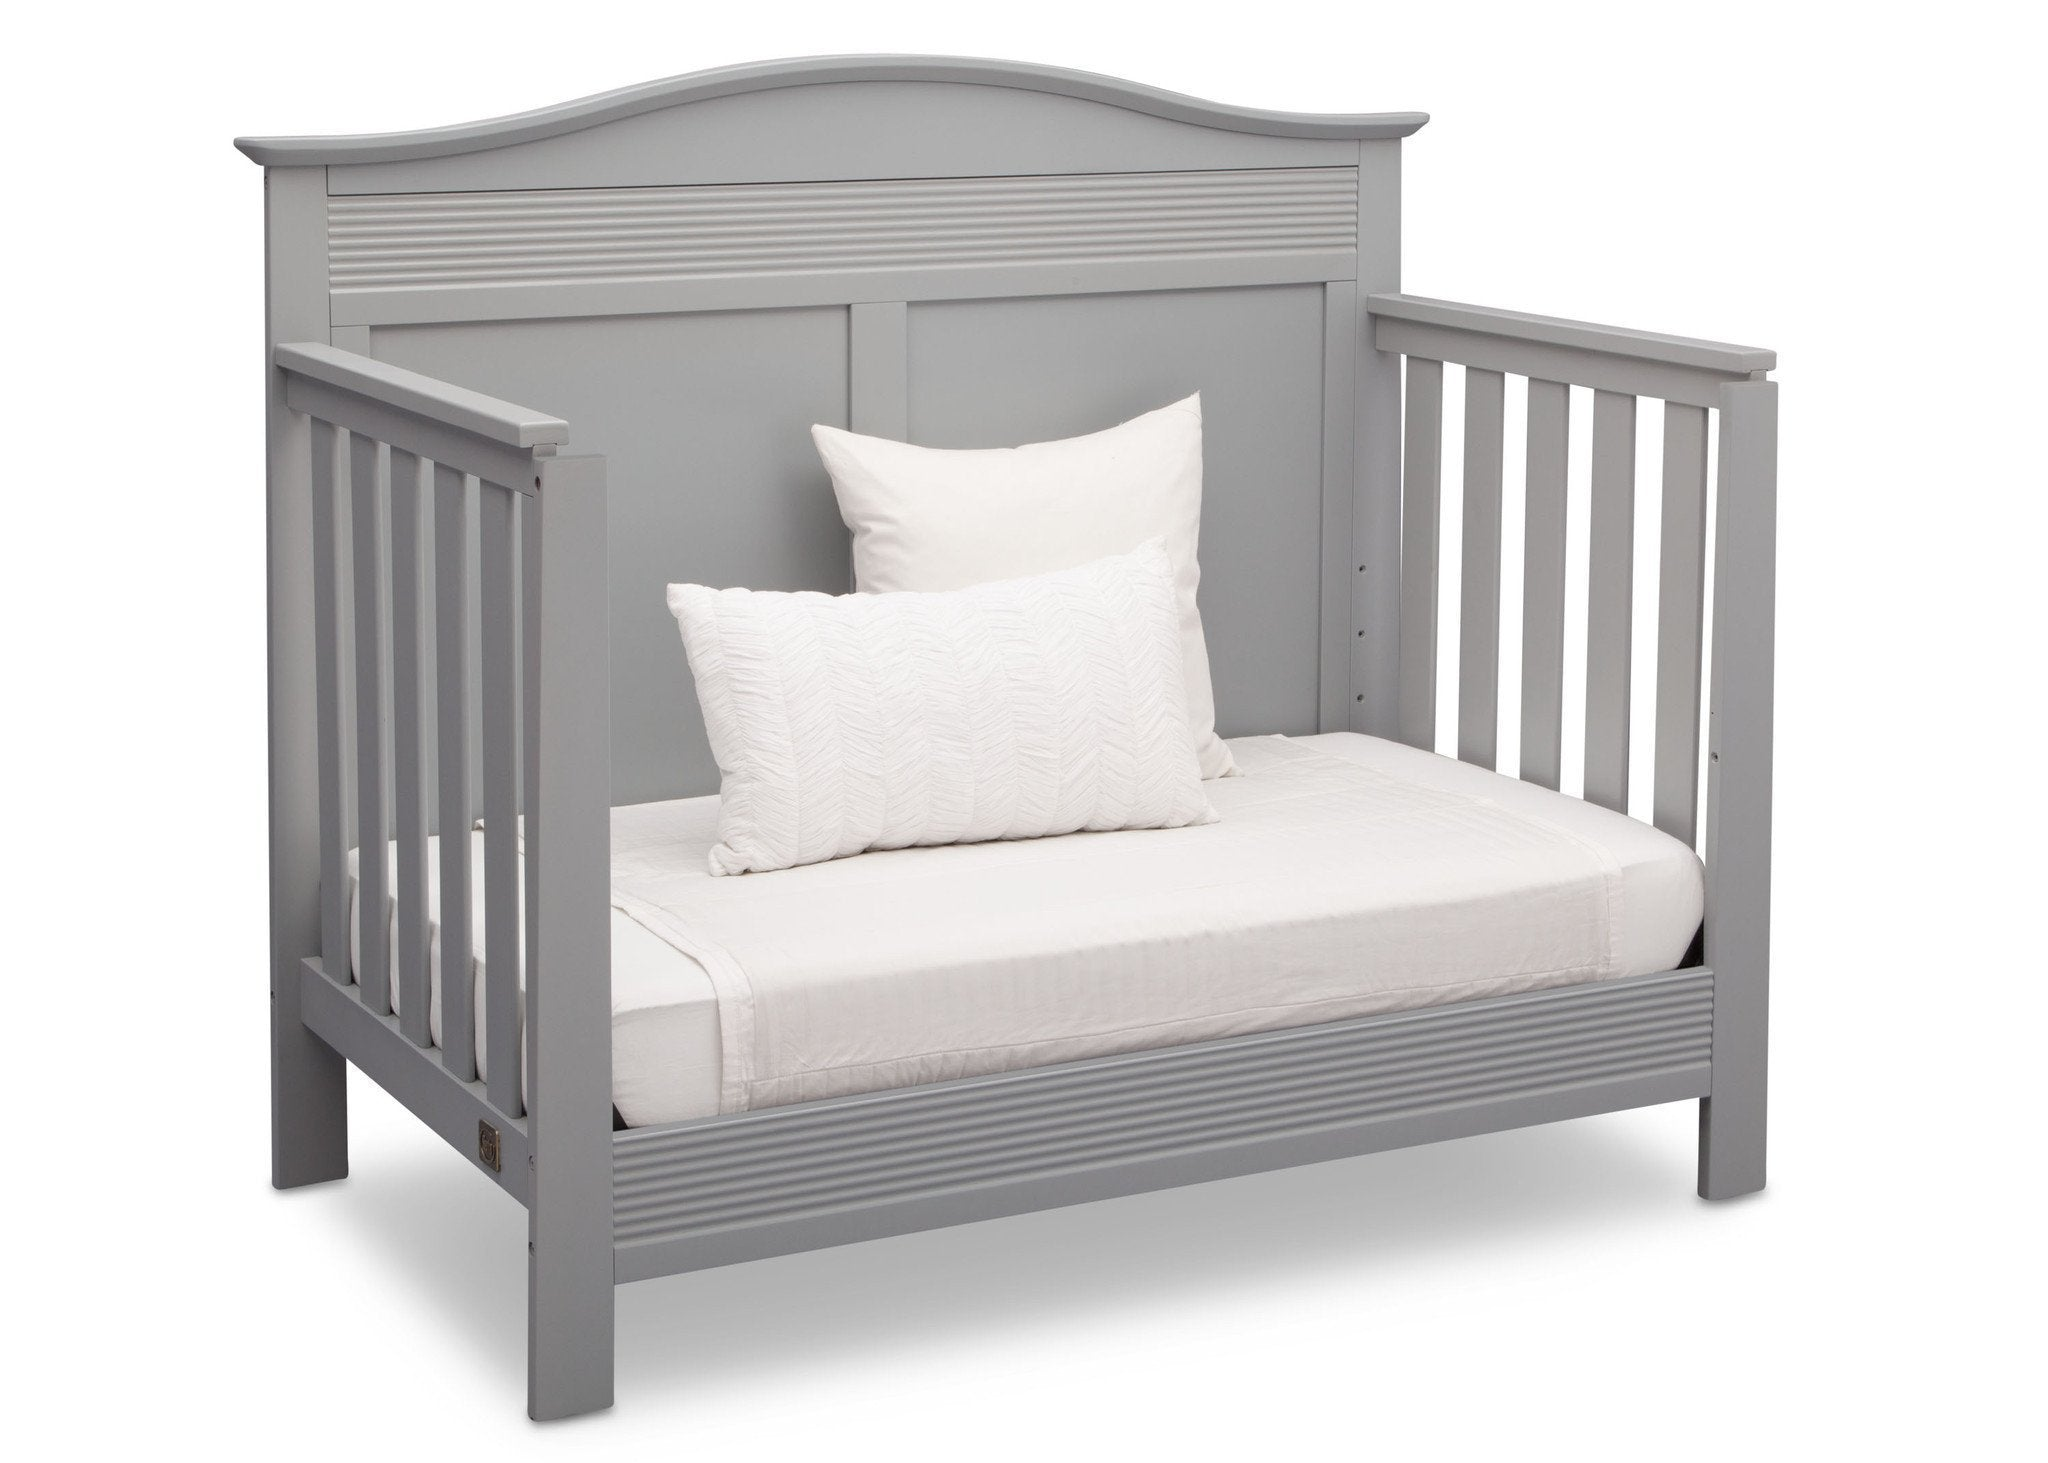 Serta Grey (026) Barrett 4-in-1 Convertible Crib, Right Daybed View a4a